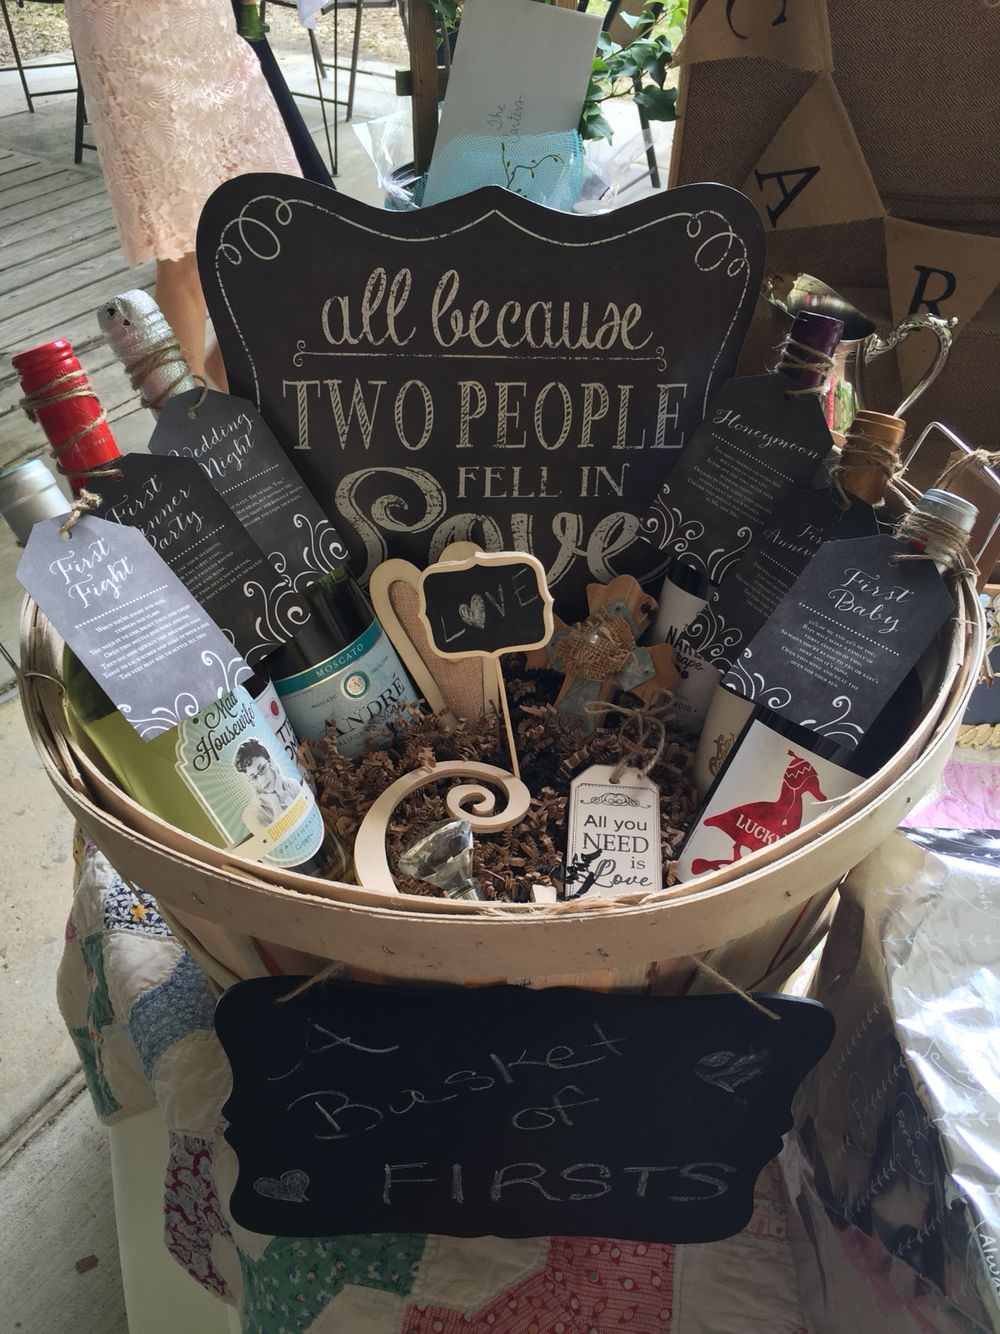 a basket of firsts wedding or bridal shower the basket all because two people fell in love sign the chalk asked and the small burlap heart and cross